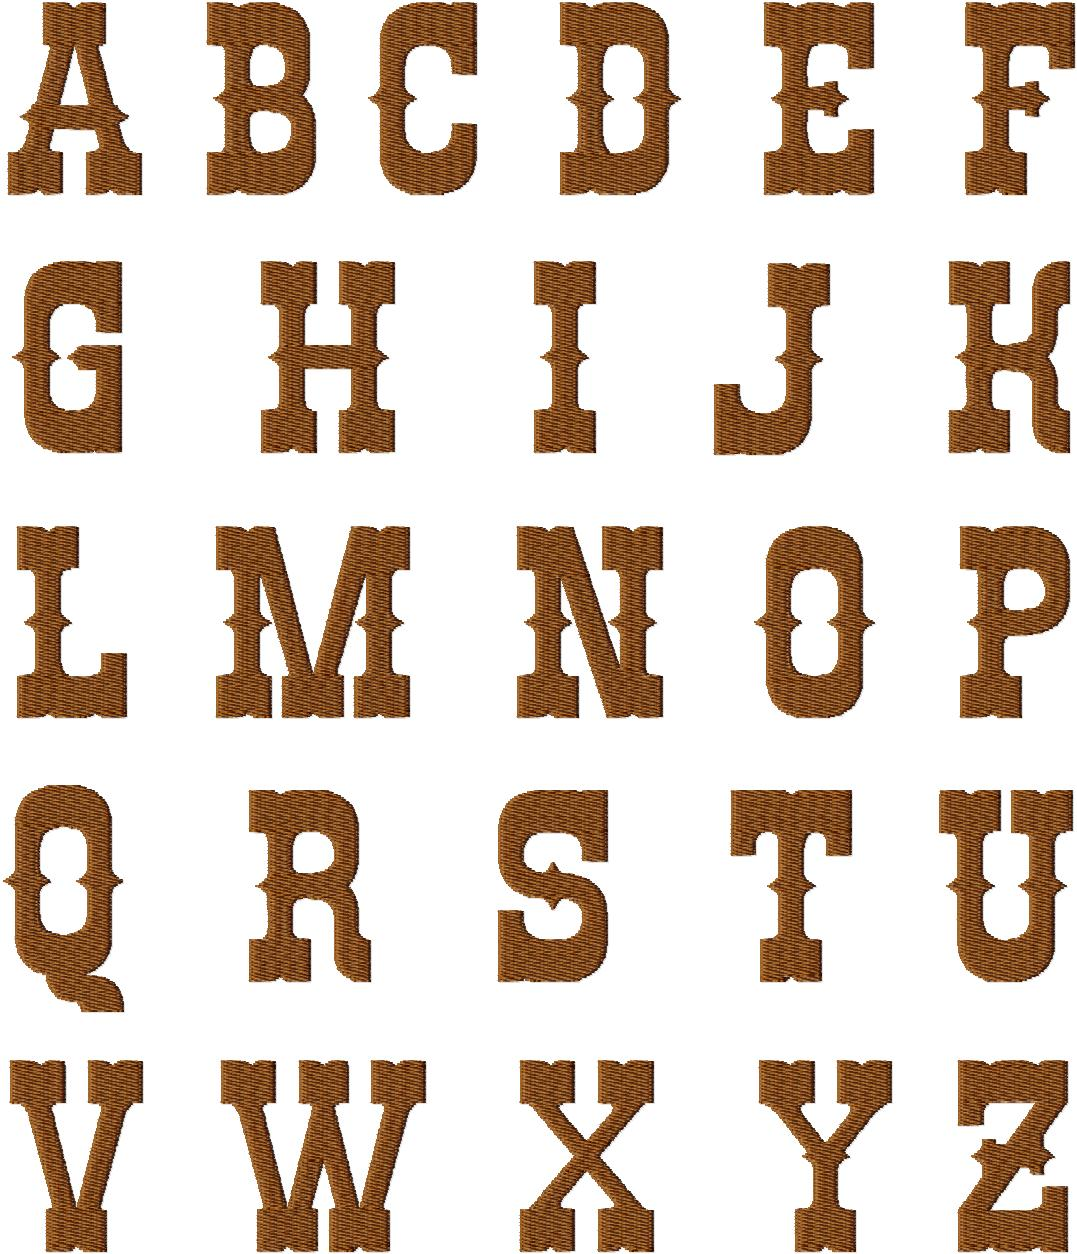 10 Western Style Number Fonts Images